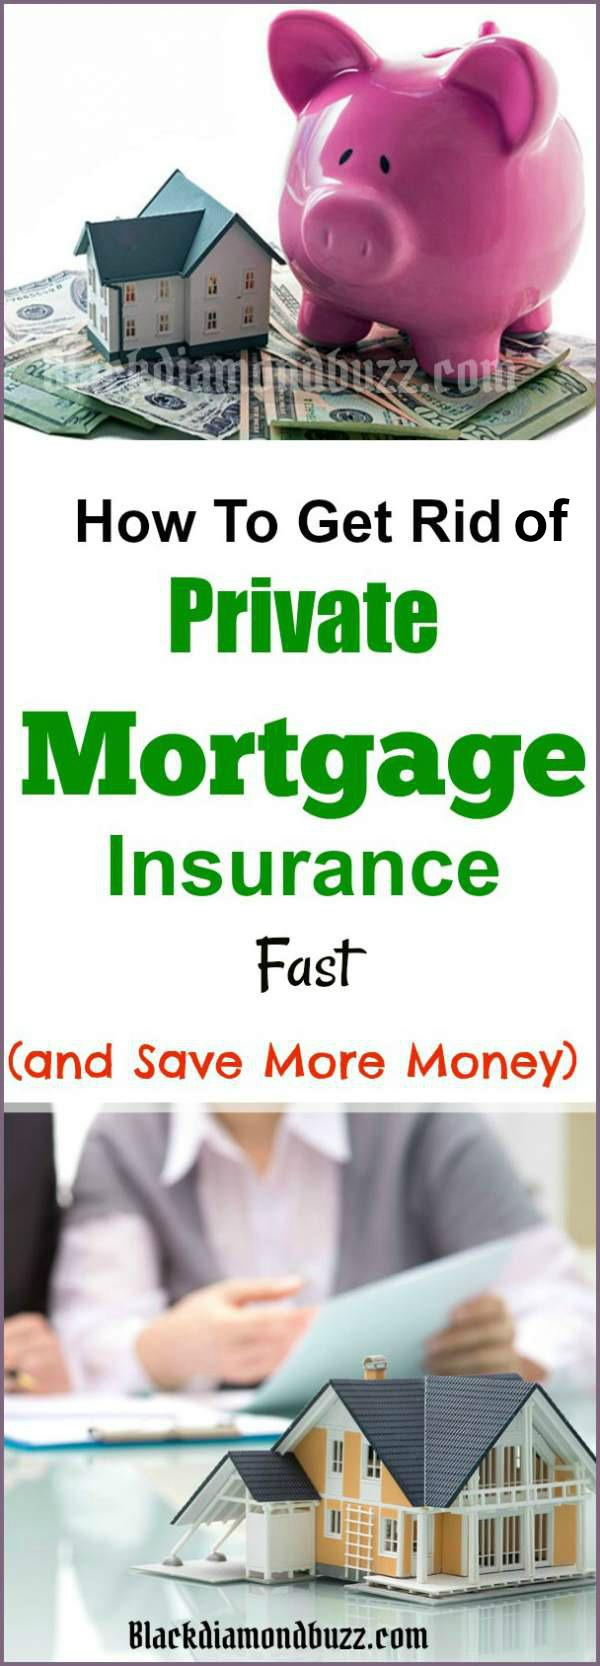 How to get rid pmi Private Mortgage Insurance Fast